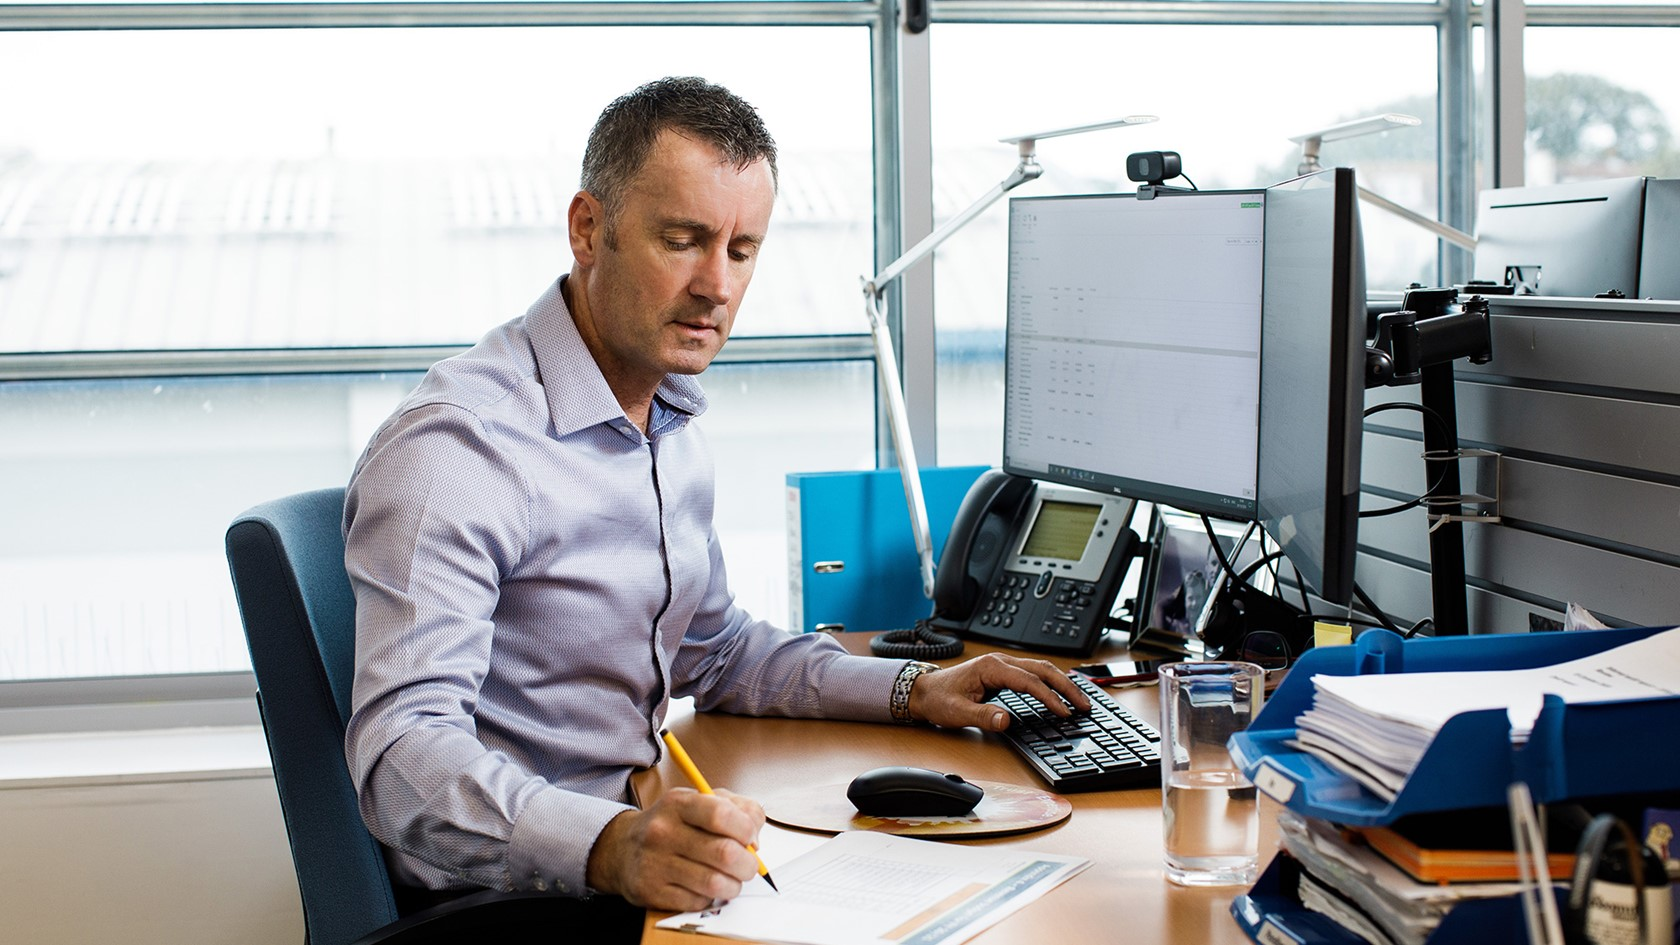 Andy Kemp works at his desk at the Jersey Electricy offices.